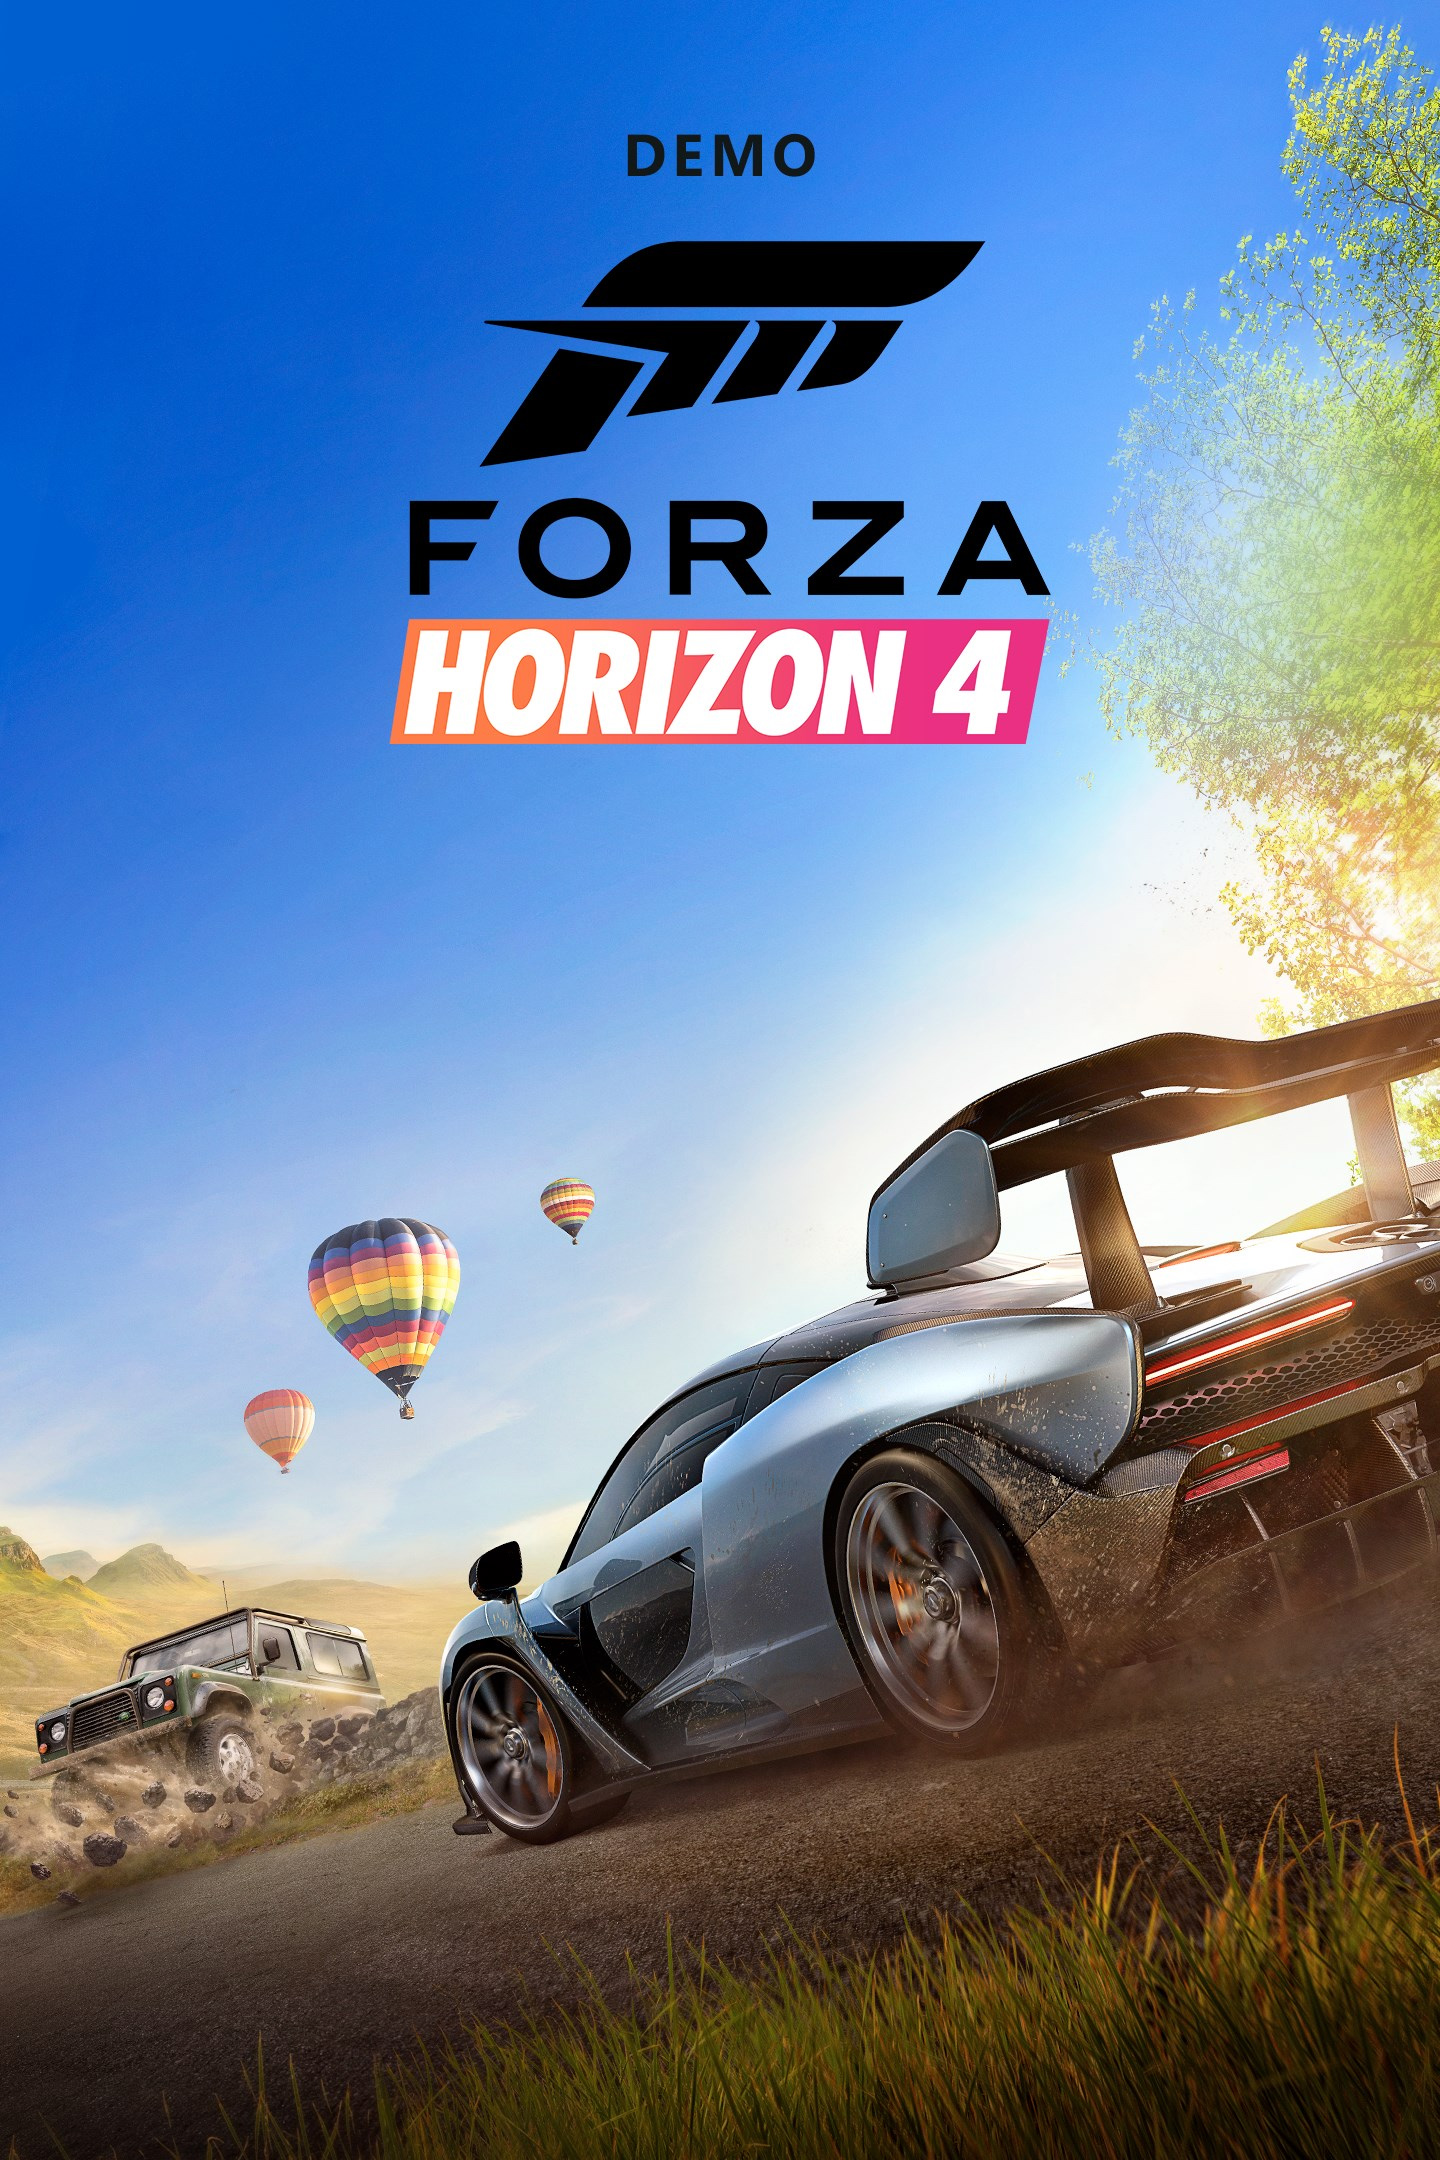 Forza Horizon 4 Demo